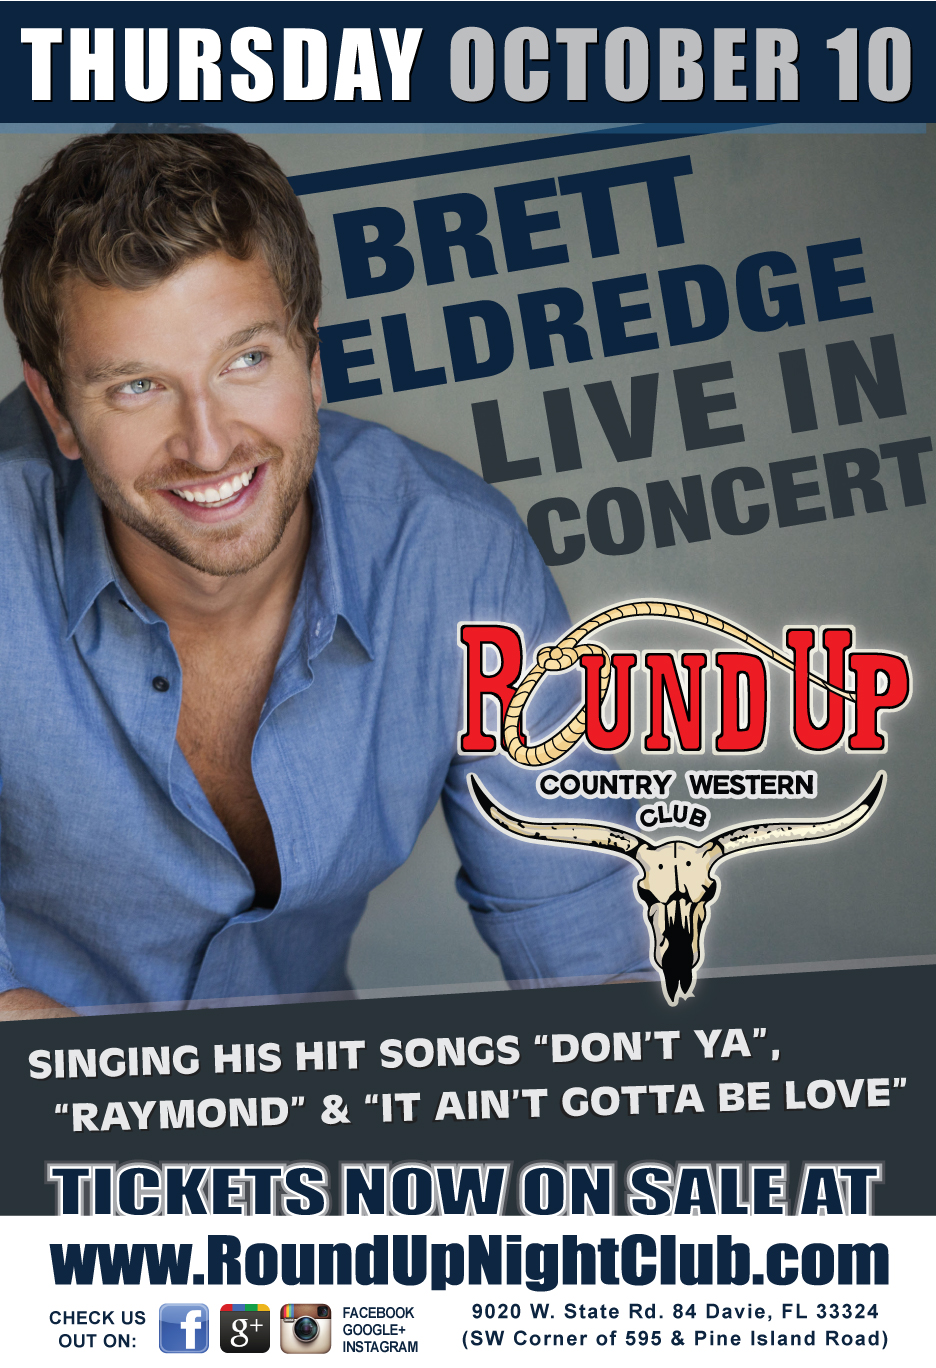 BrettEldredge1_web